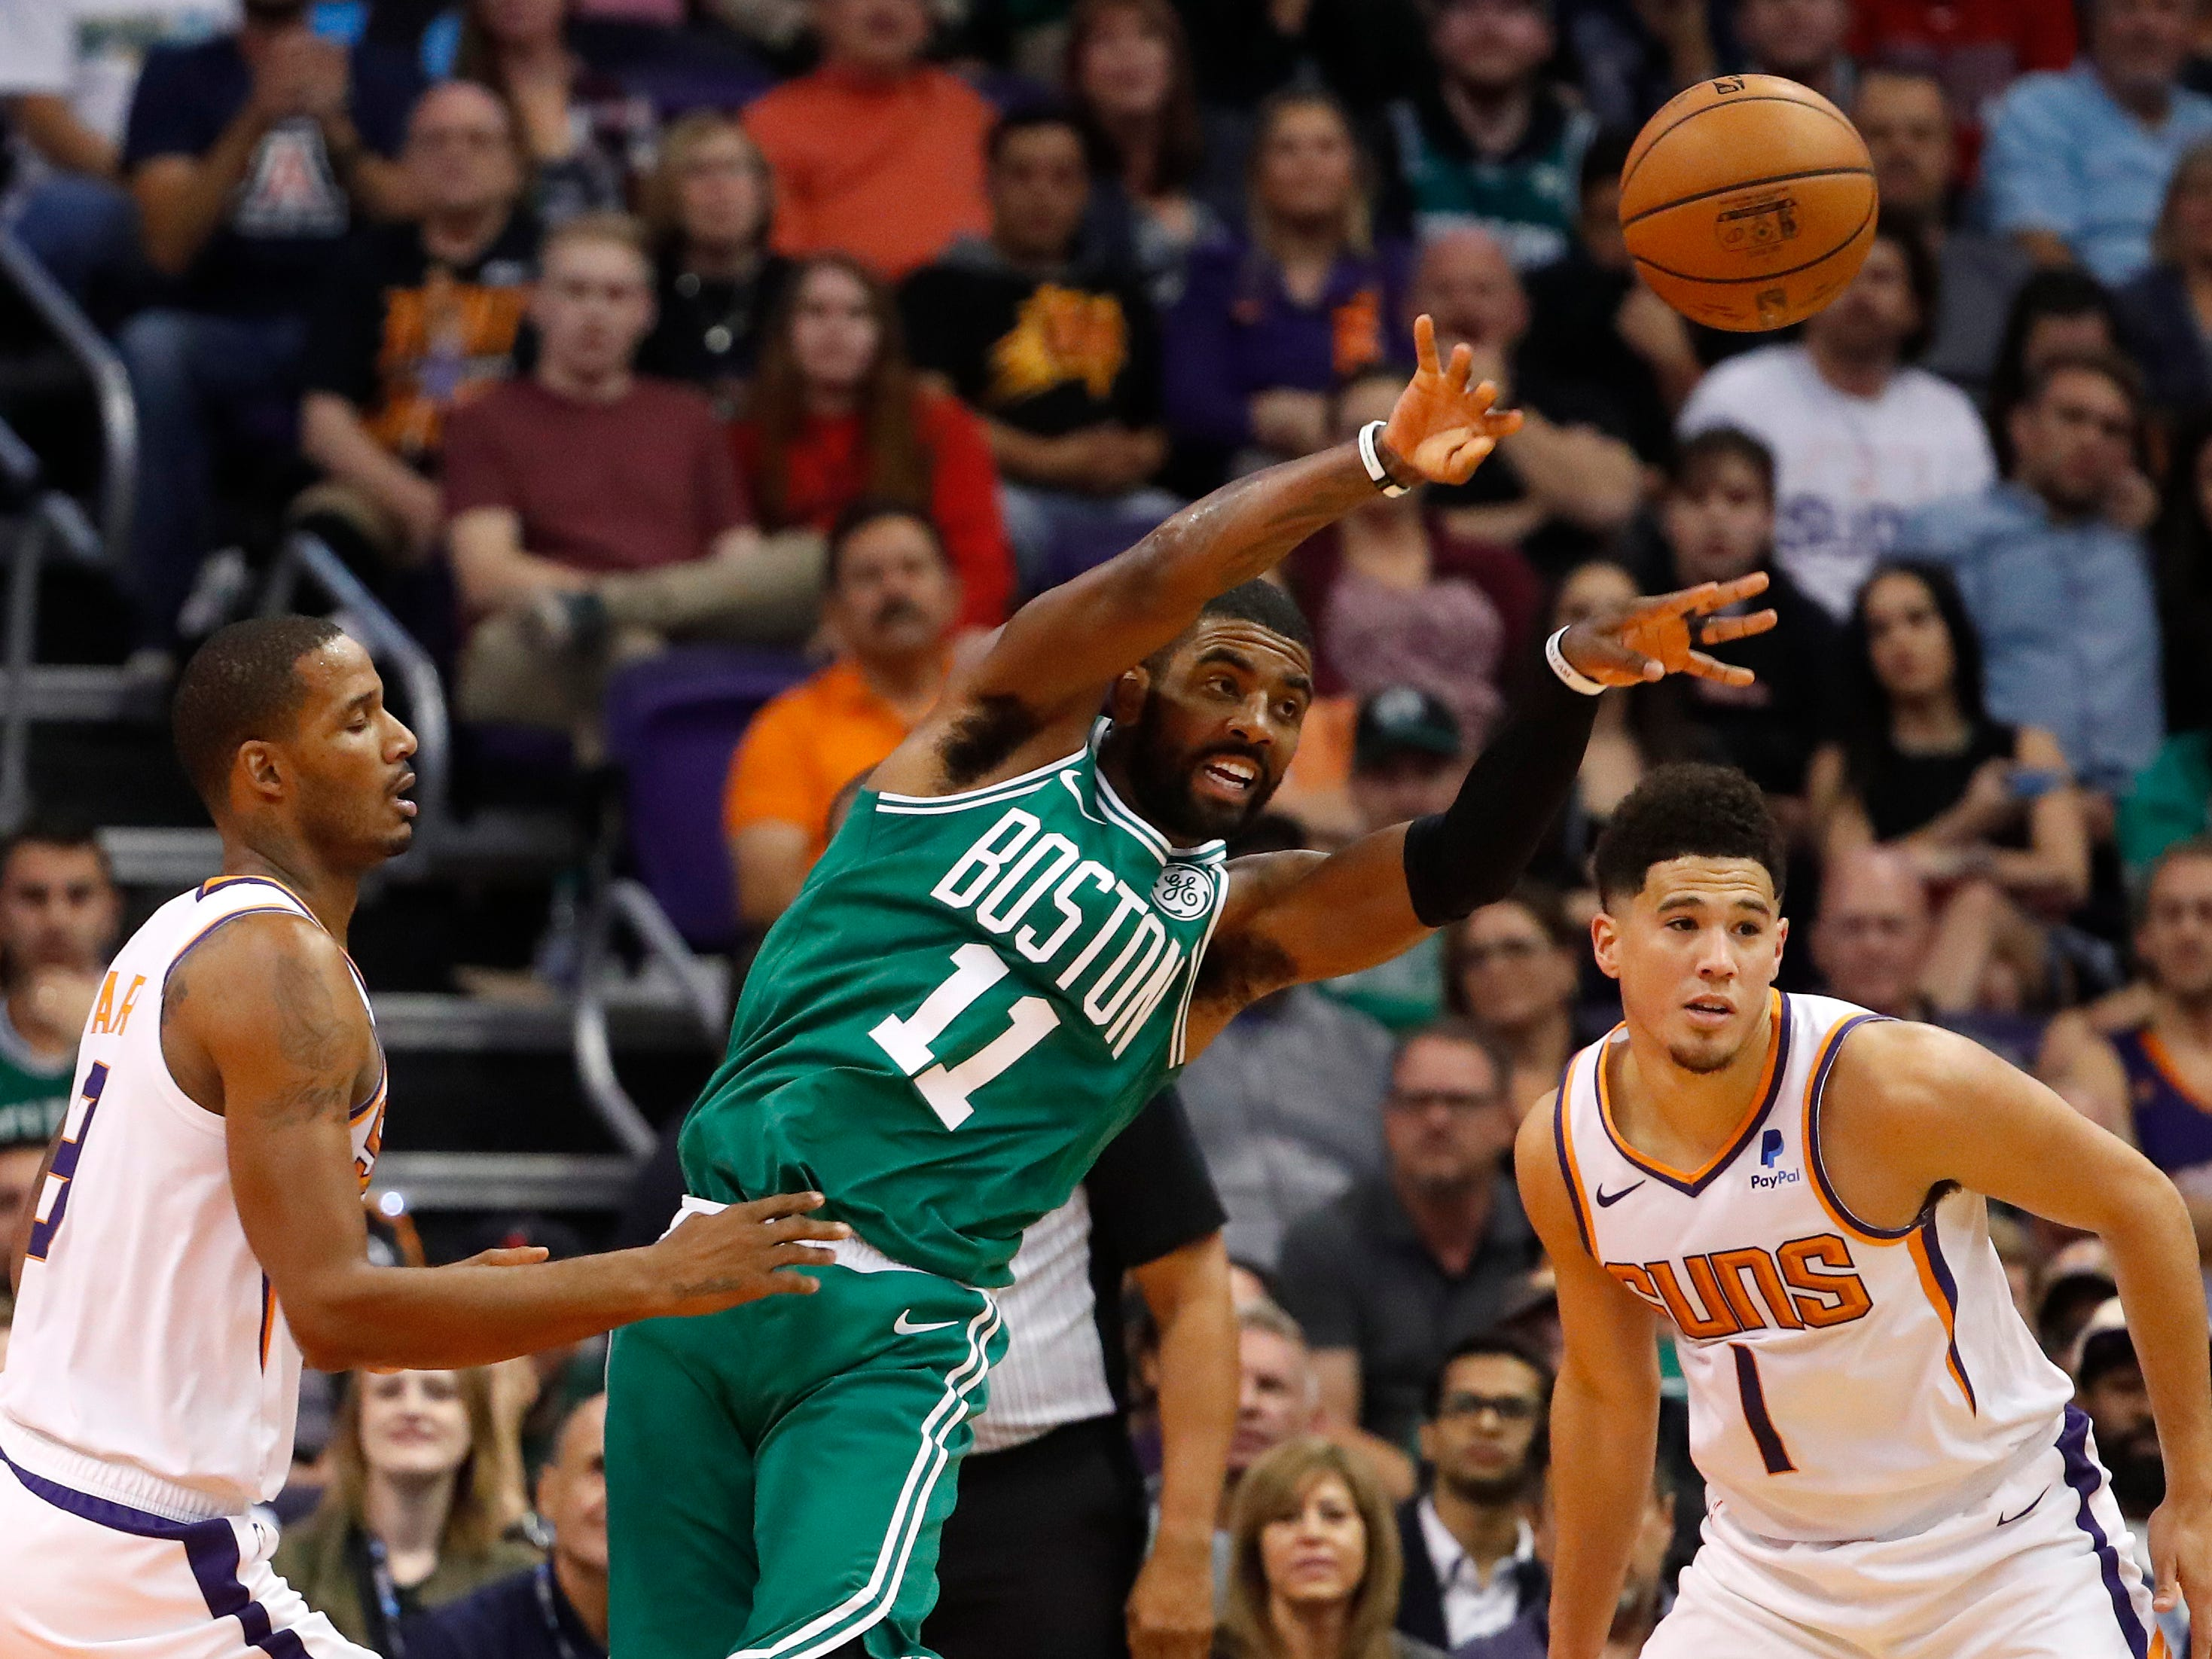 Suns' Trevor Ariza (3) defends Celtics' Kyrie Irving (11) during the first half at Talking Stick Resort Arena in Phoenix, Ariz. on November 8, 2018.